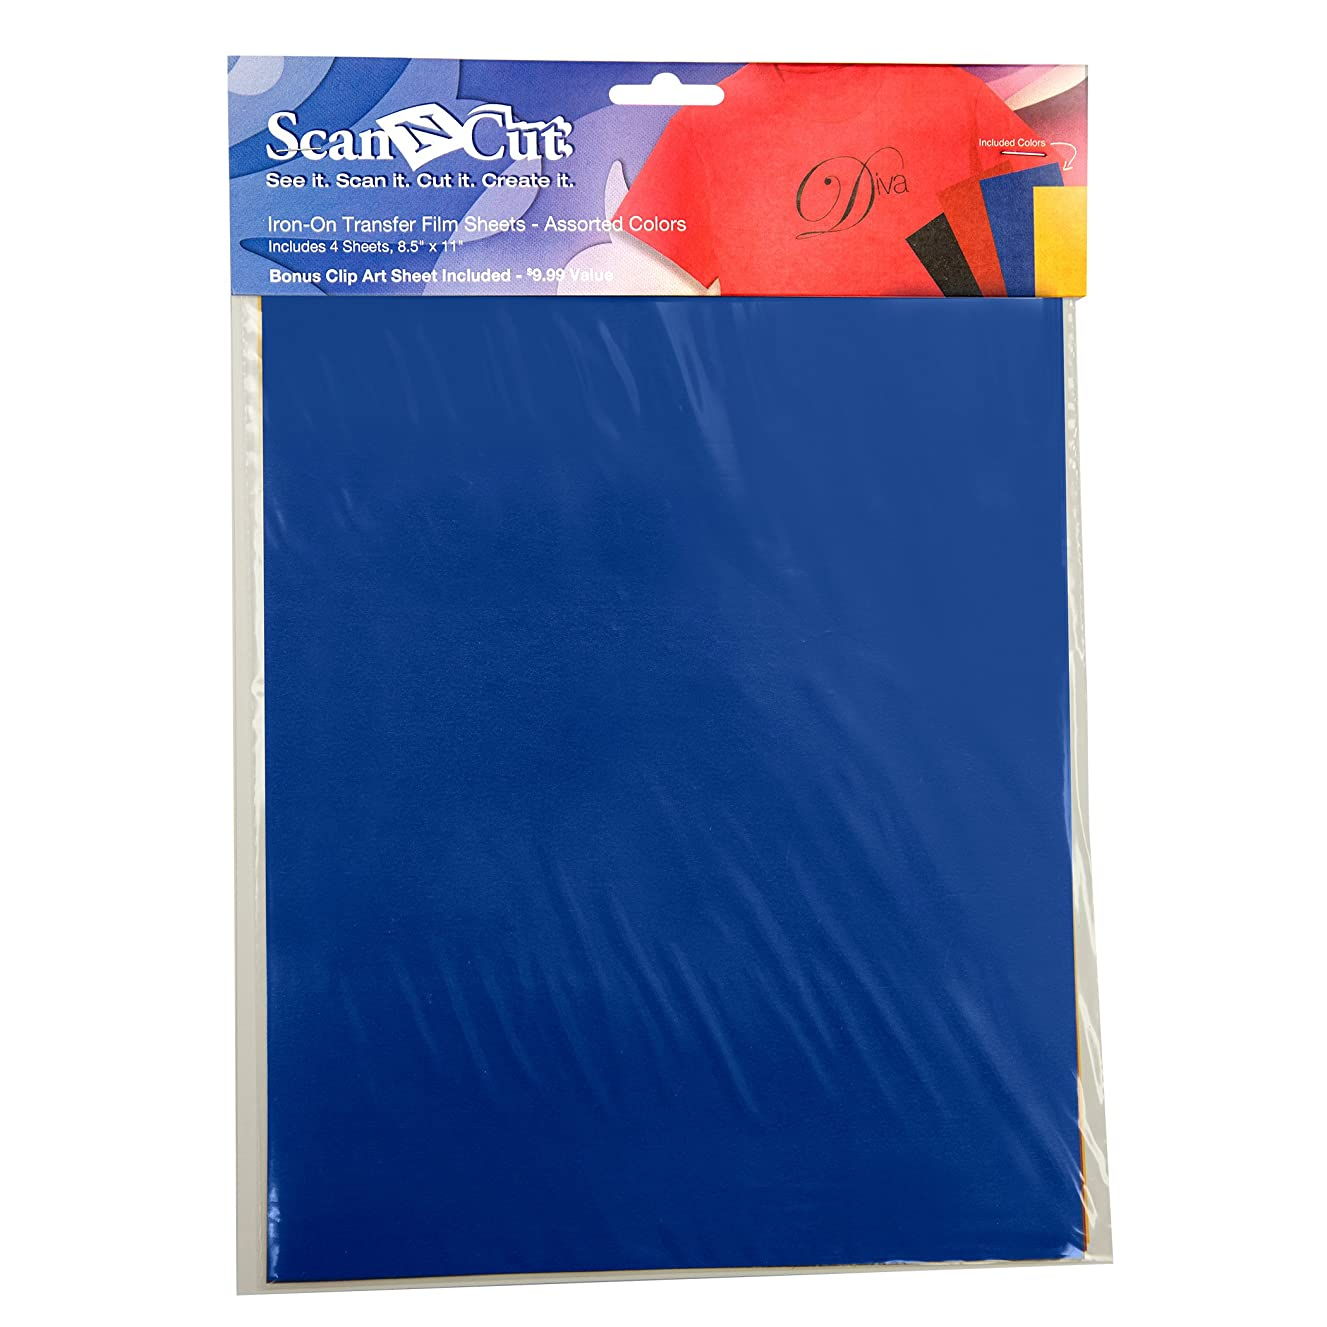 Brother ScanNCut CATFM01 Iron-On Transfer Film Sheets